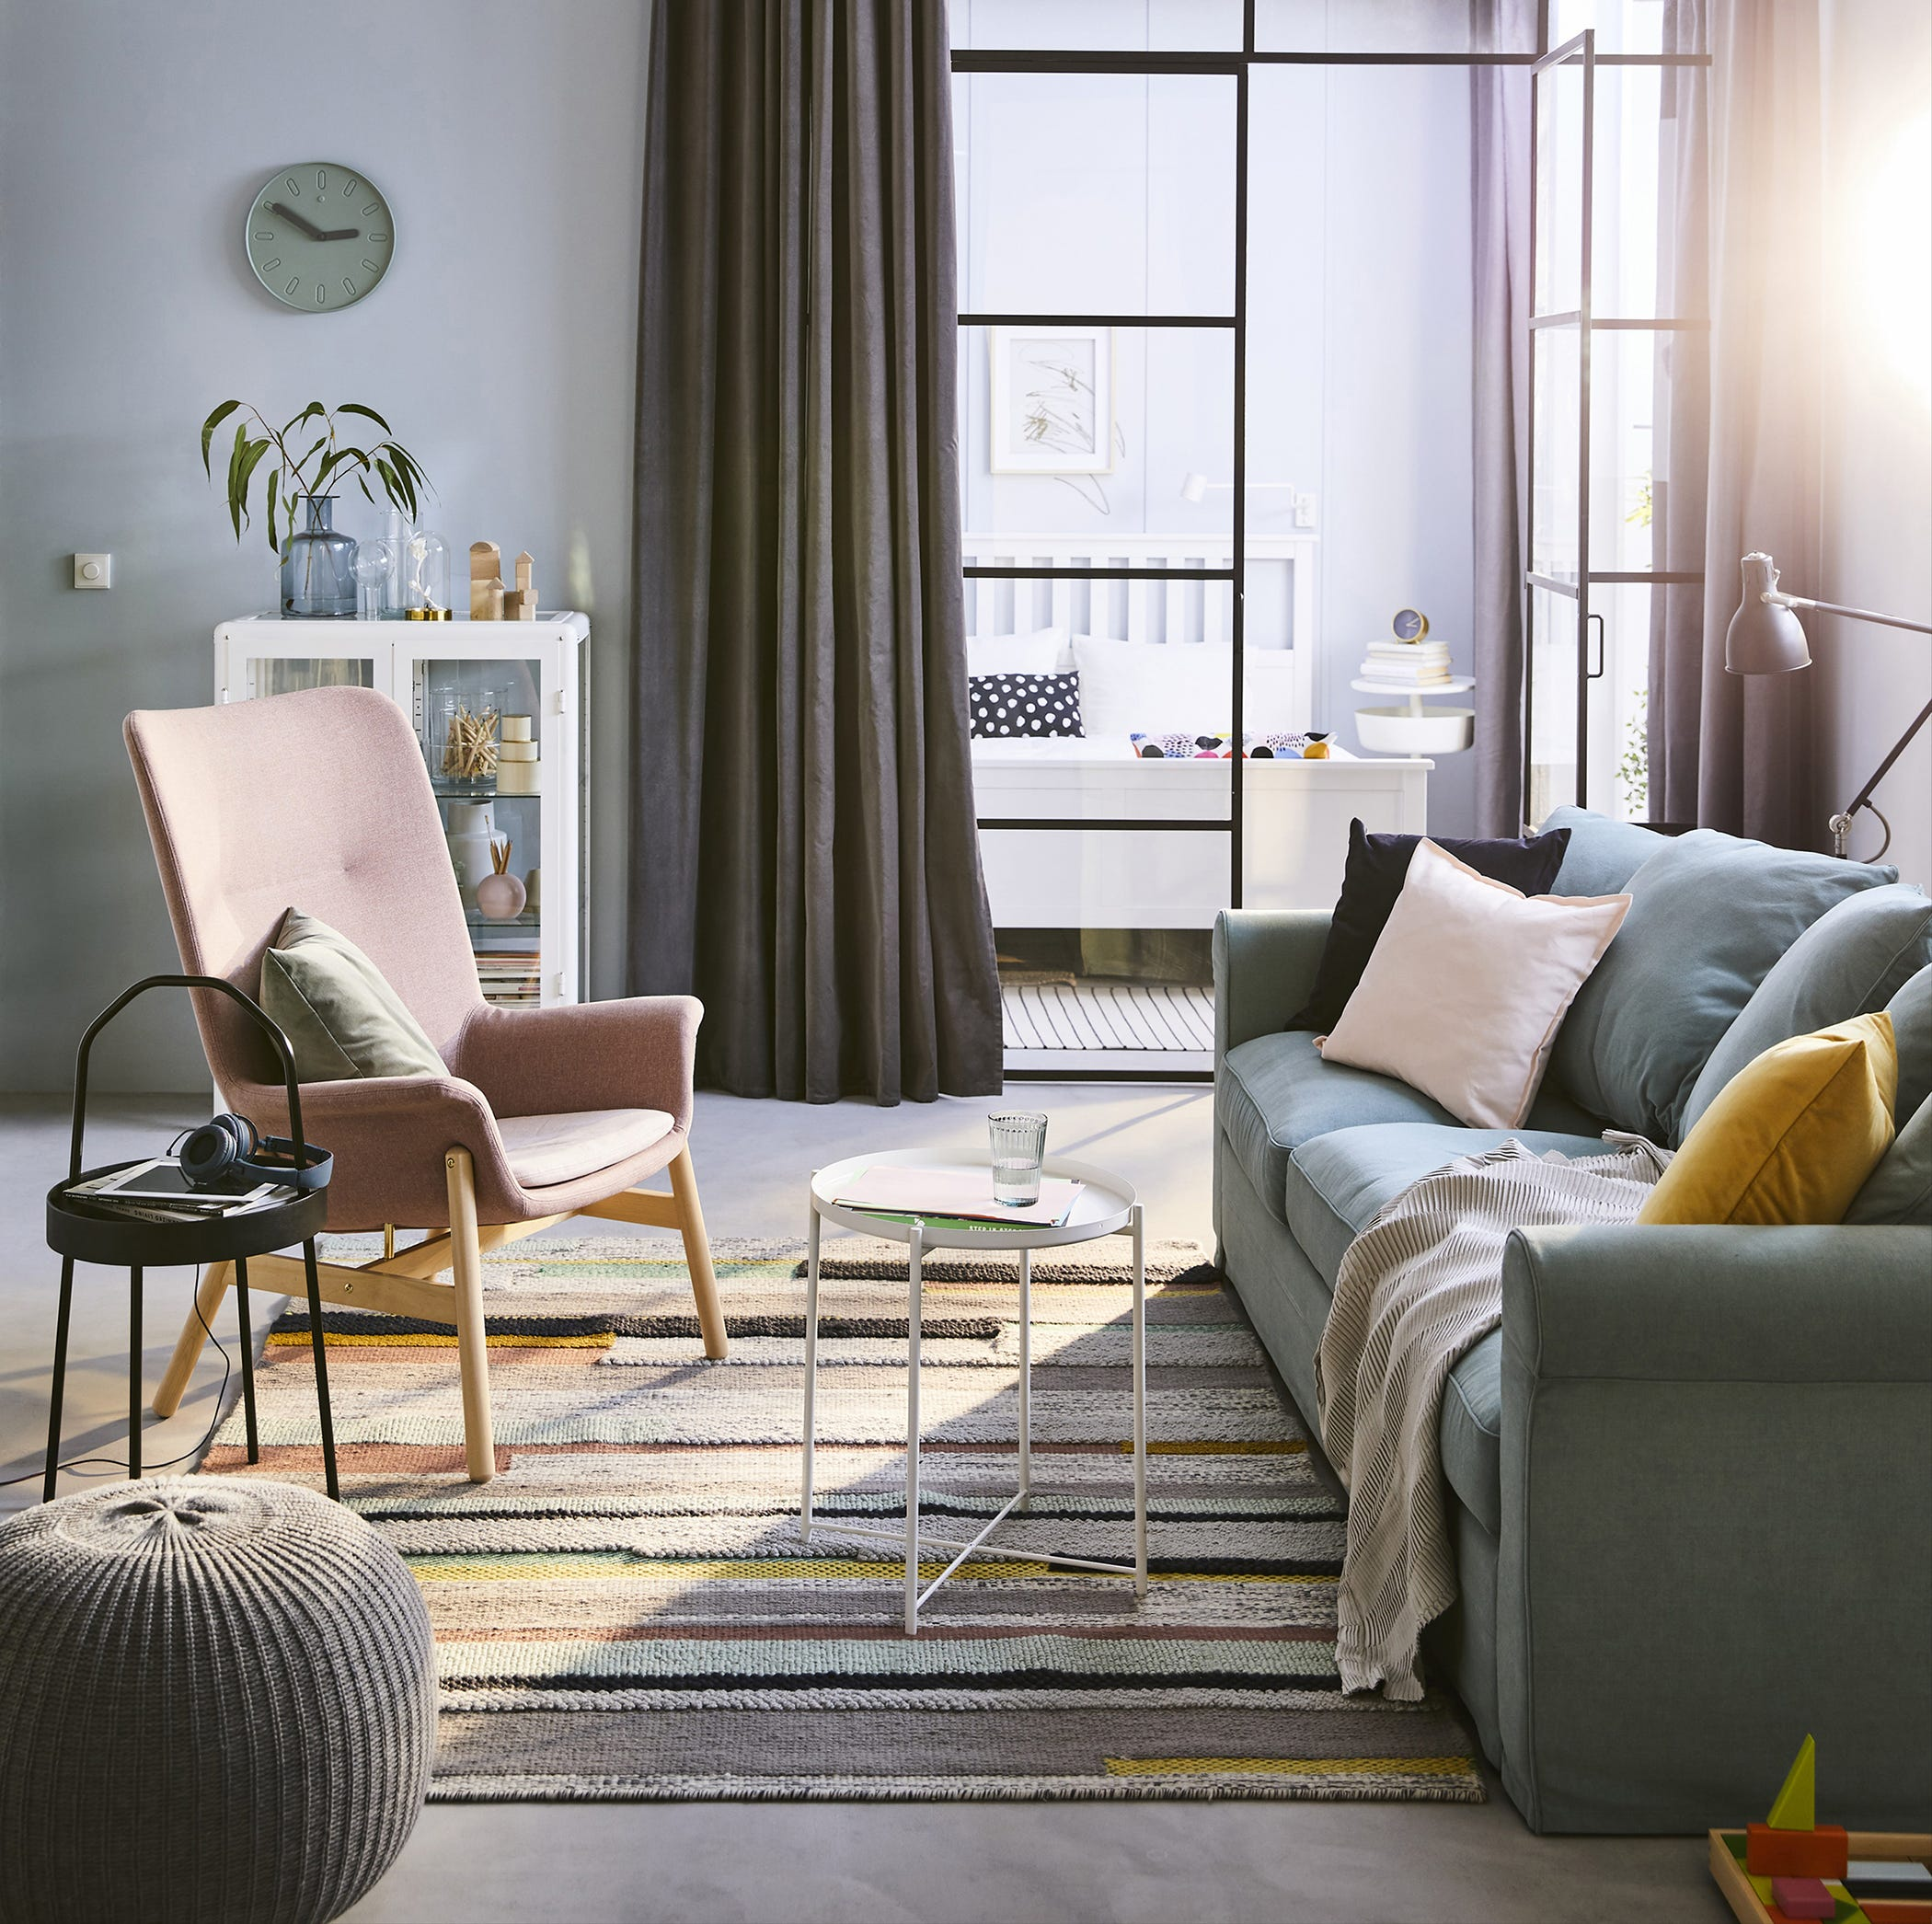 Scandinavian furniture style Bedroom Detroit News Home Touch Scandinavian Style Just Right For Winter